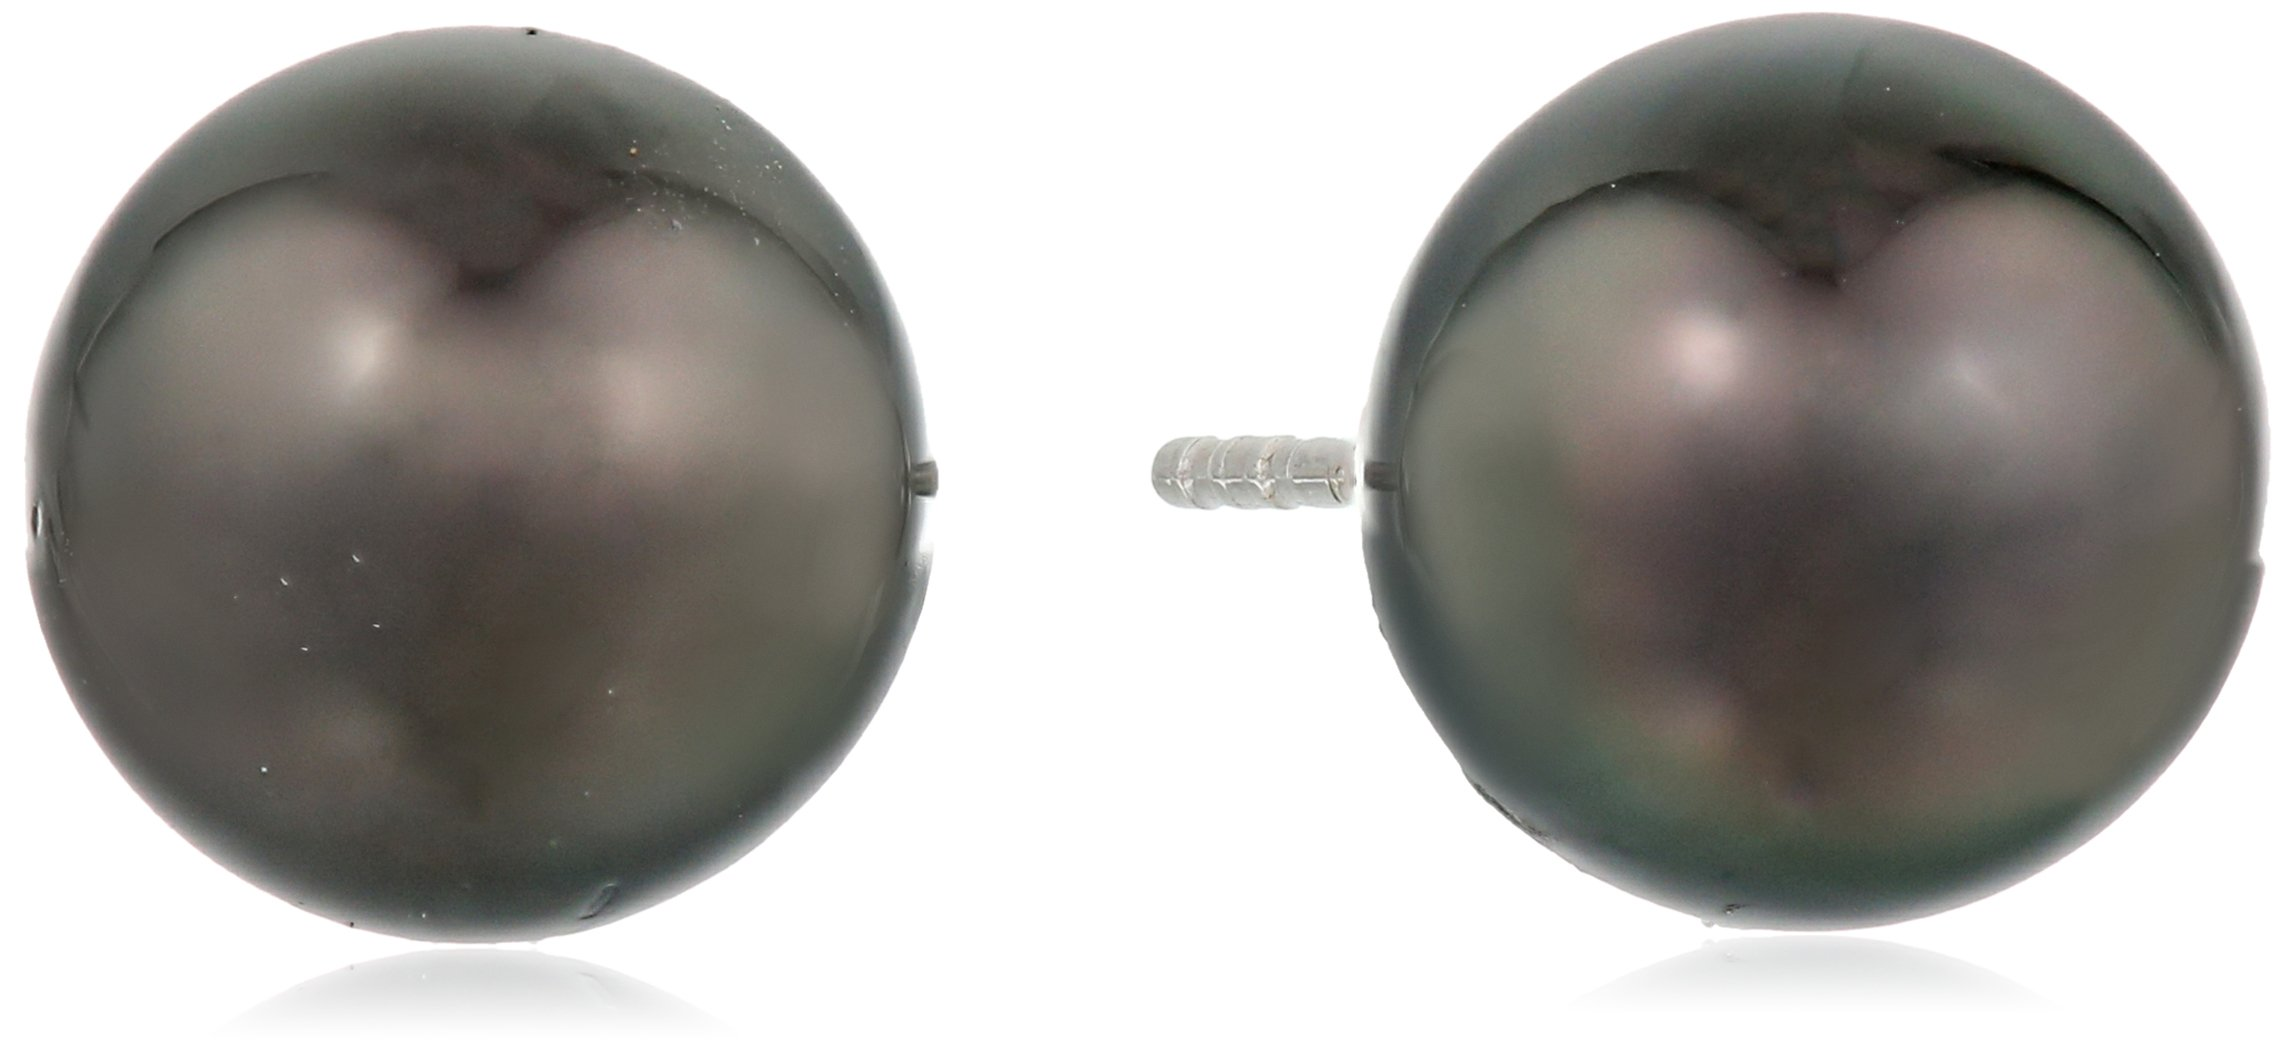 TARA Pearls ''Classic Collection'' 18k White Gold Natural Color Tahitian Cultured Pearl Stud Earrings, 10-11mm